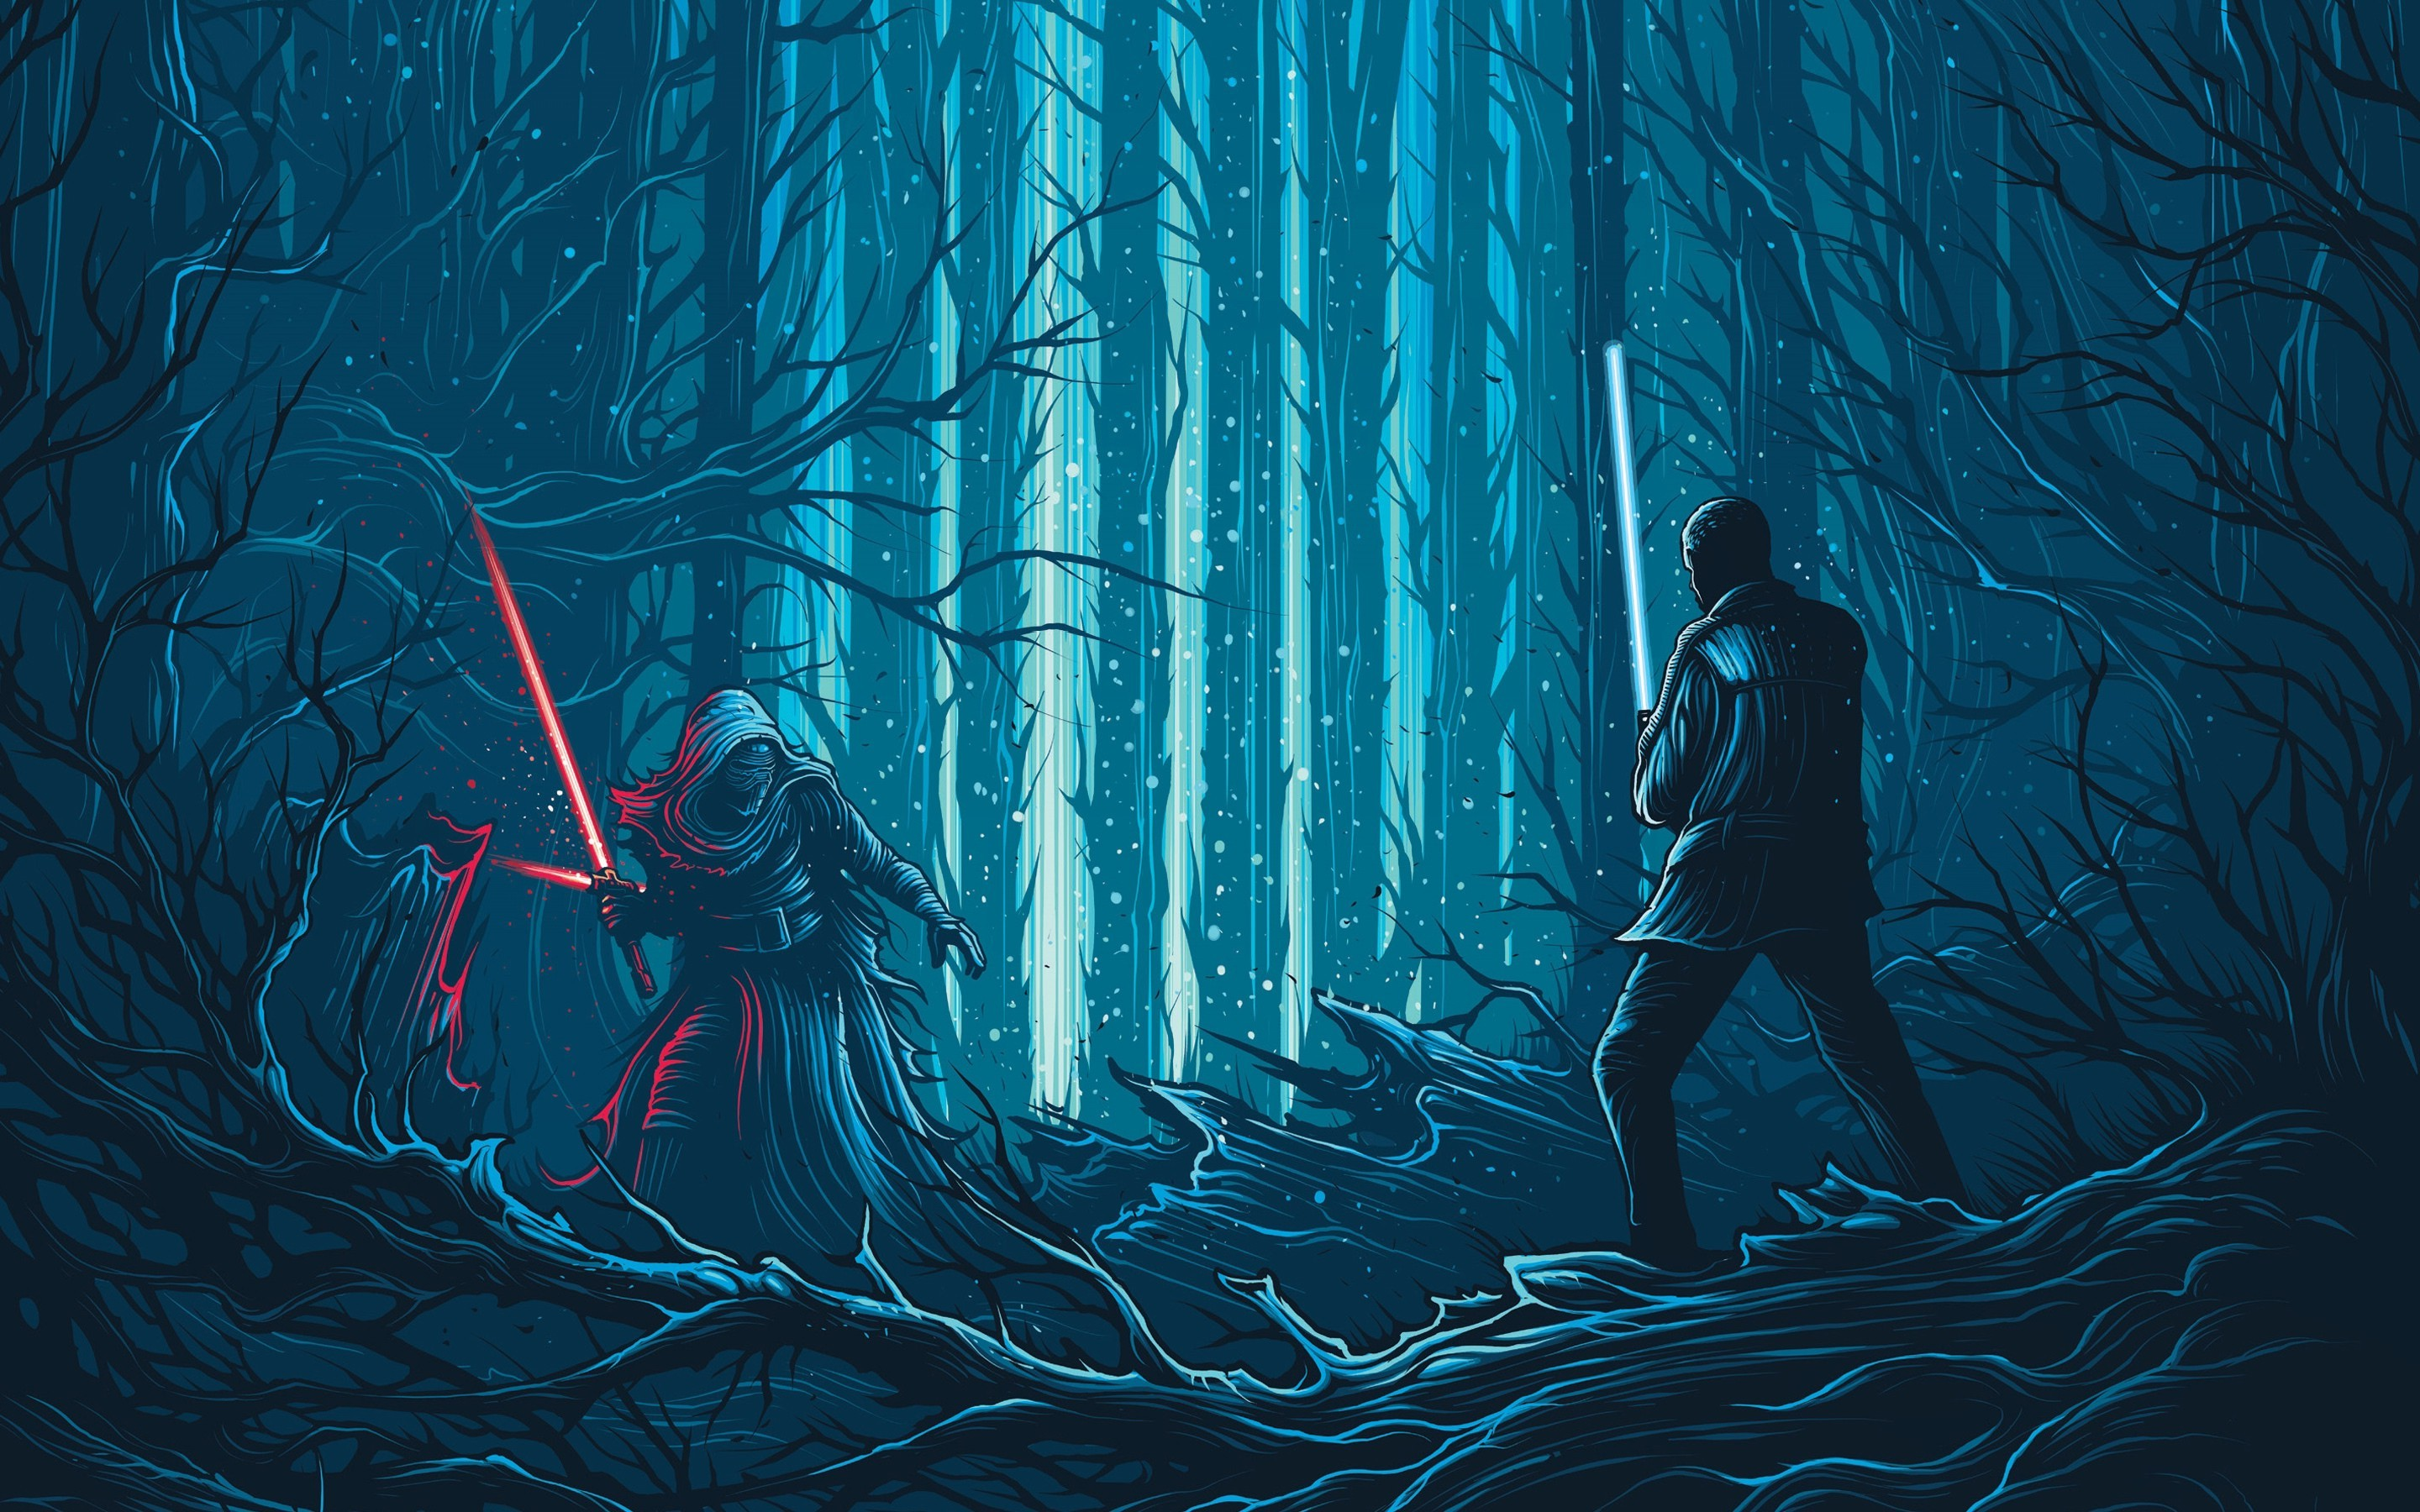 Gravity Falls Wallpaper Forest Kylo Ren Star Wars Star Wars The Force Awakens